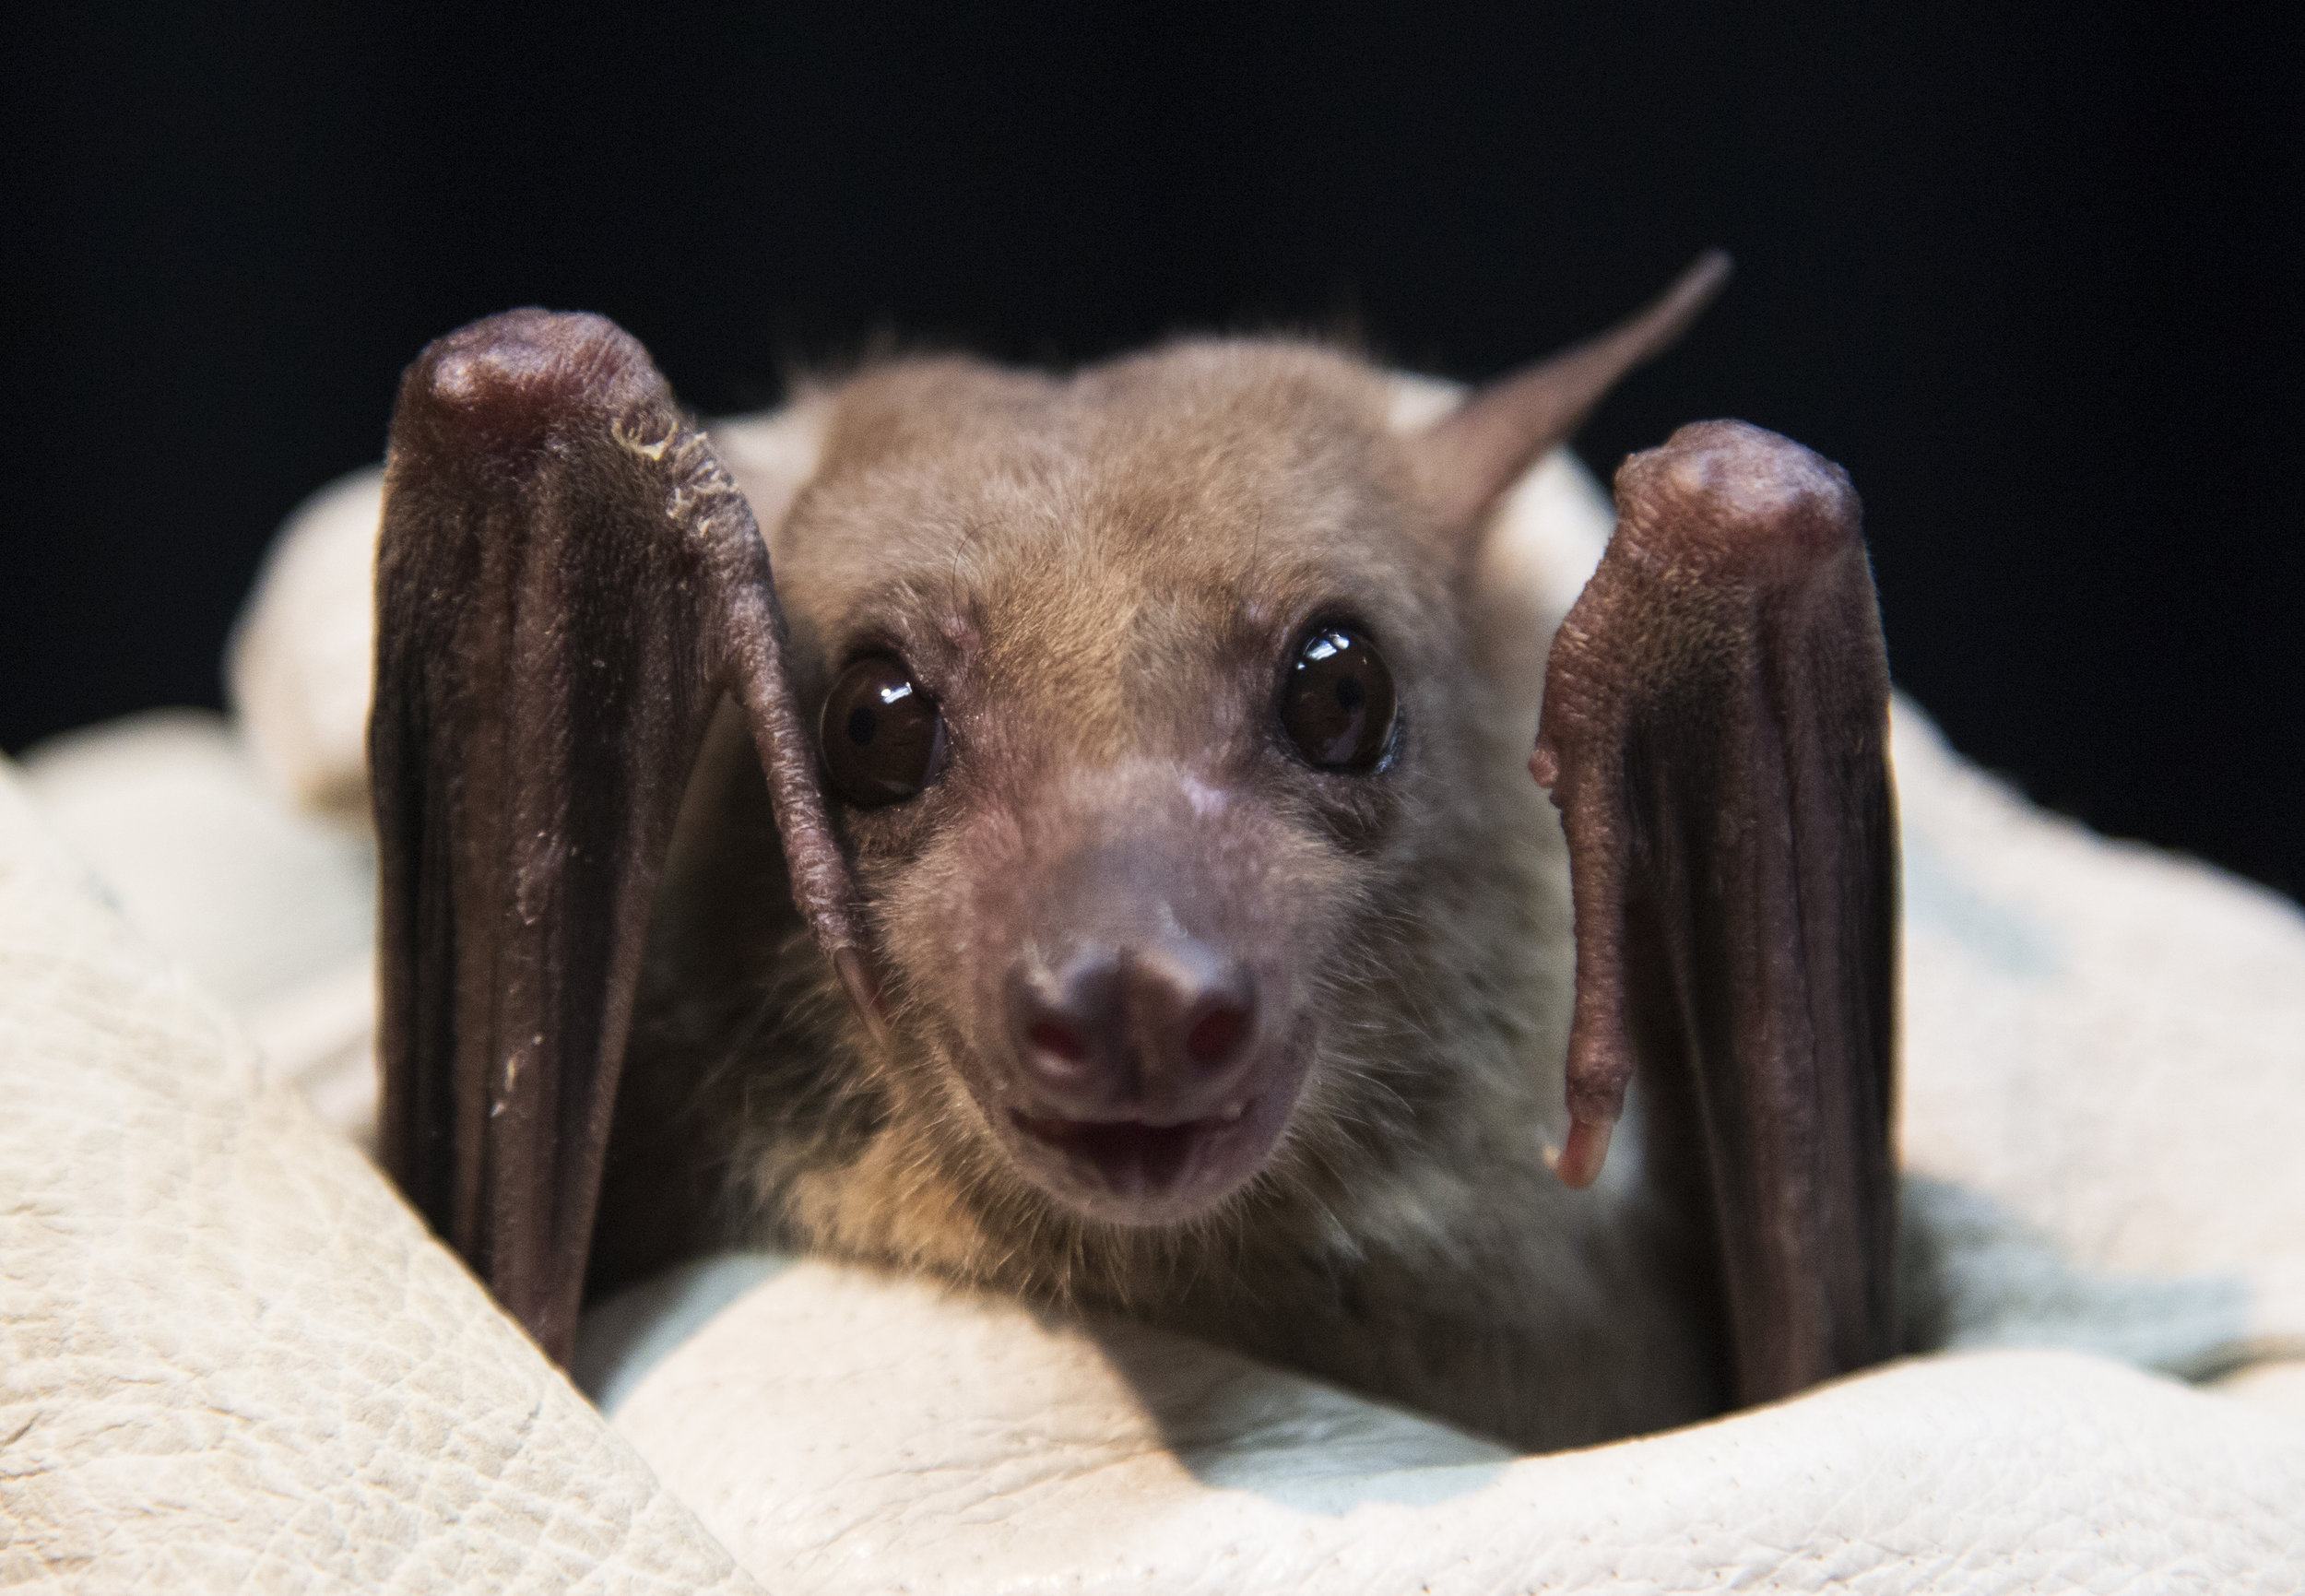 Egyptian Fruit bats roost in caves, but they were also found roosting in the passageways of the Pyramids of Giza when the tombs were opened in 1810. They weigh less than half a pound but have a wingspan of about 2 feet.